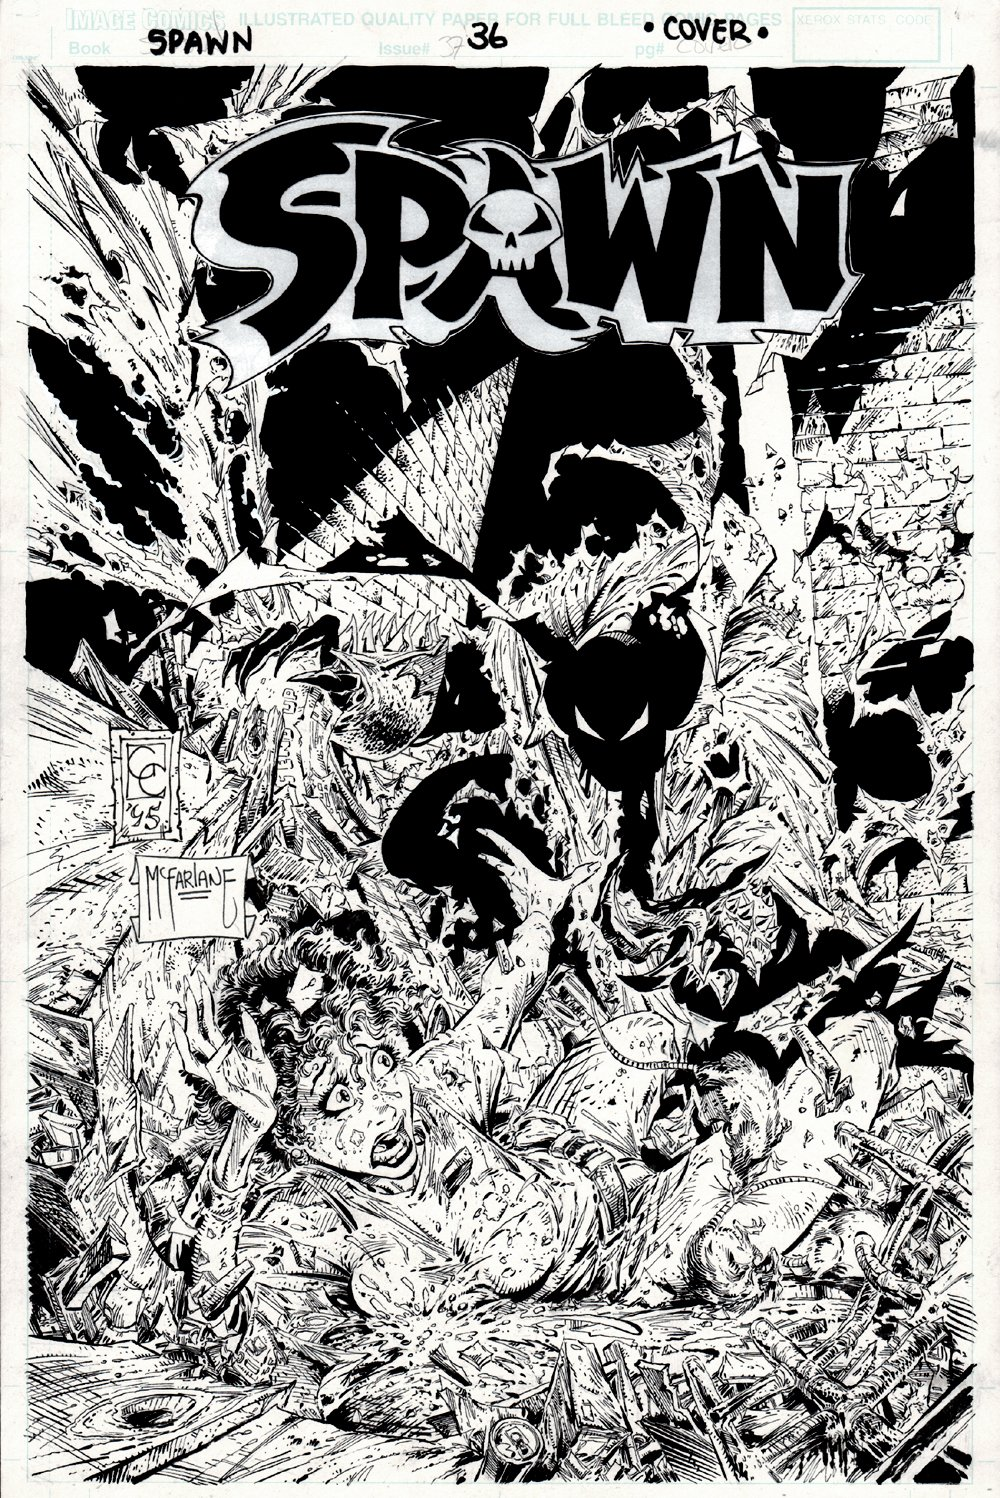 Spawn #36 Cover 1995